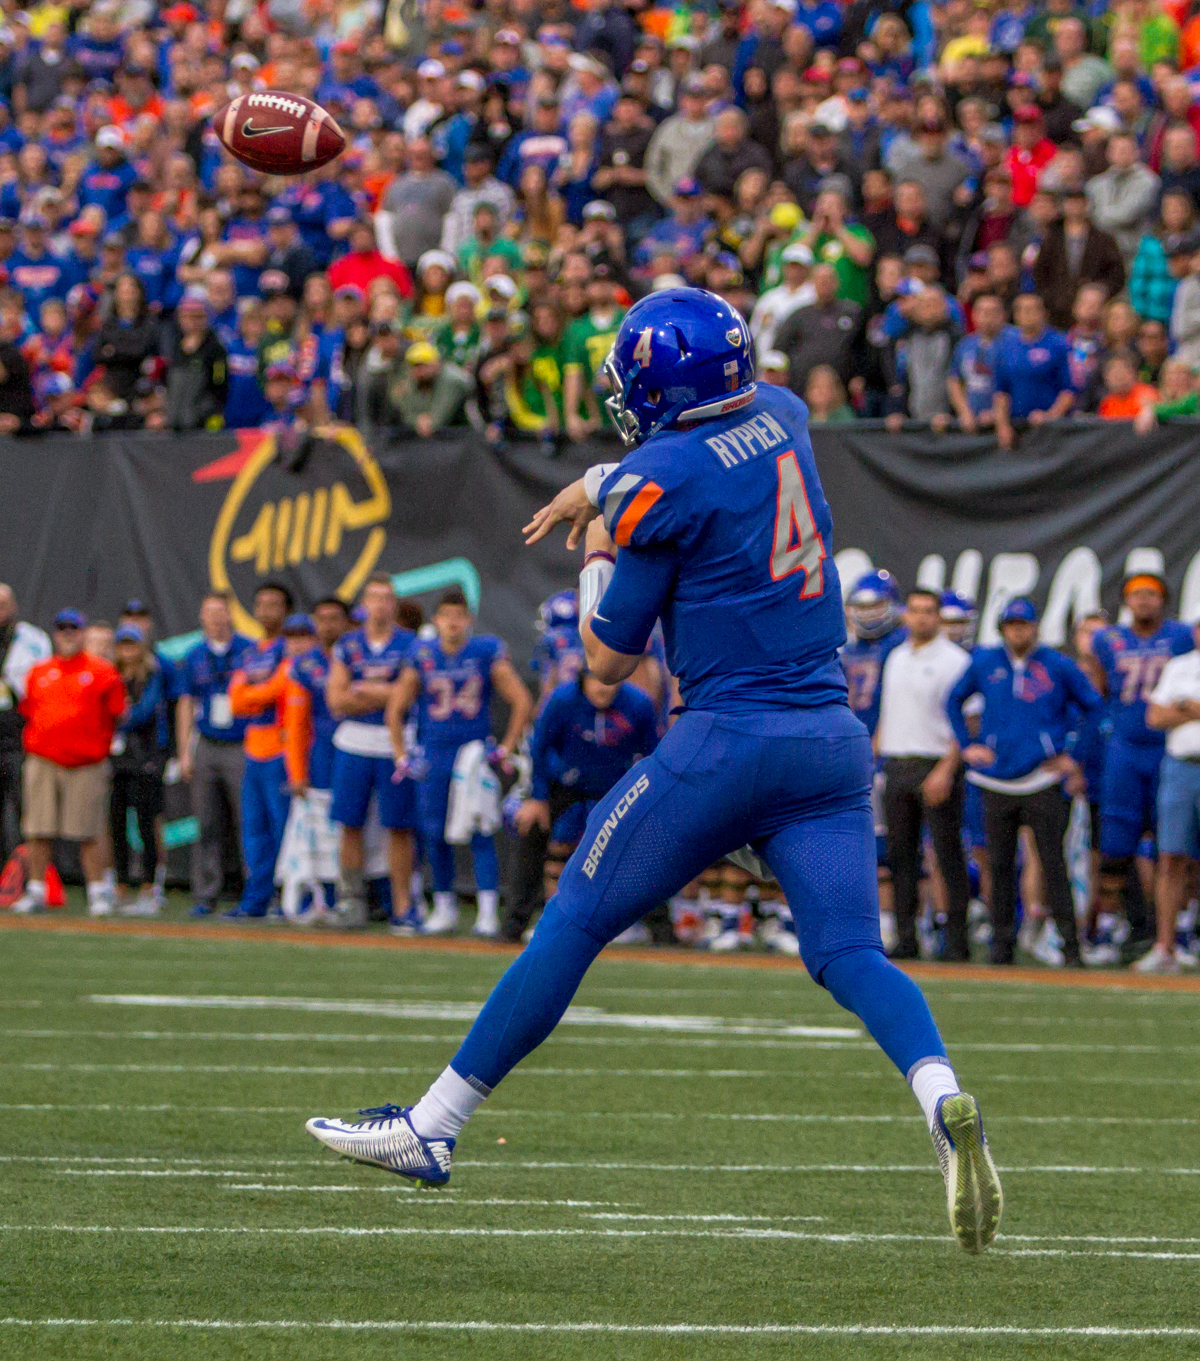 Boise State quarterback Brett Rypien (#4) throws a pass. The Boise State Broncos defeated the Oregon Ducks 38 to 28 in the 2017 Las Vegas Bowl at Sam Boyd Stadium in Las Vegas, Nevada on Saturday December 17, 2017. The Las Vegas Bowl served as the first test for Oregon's new Head Coach Mario Cristobal following the loss of former Head Coach Willie Taggart to Florida State University earlier this month. Photo by Ben Lonergan, Oregon News Lab